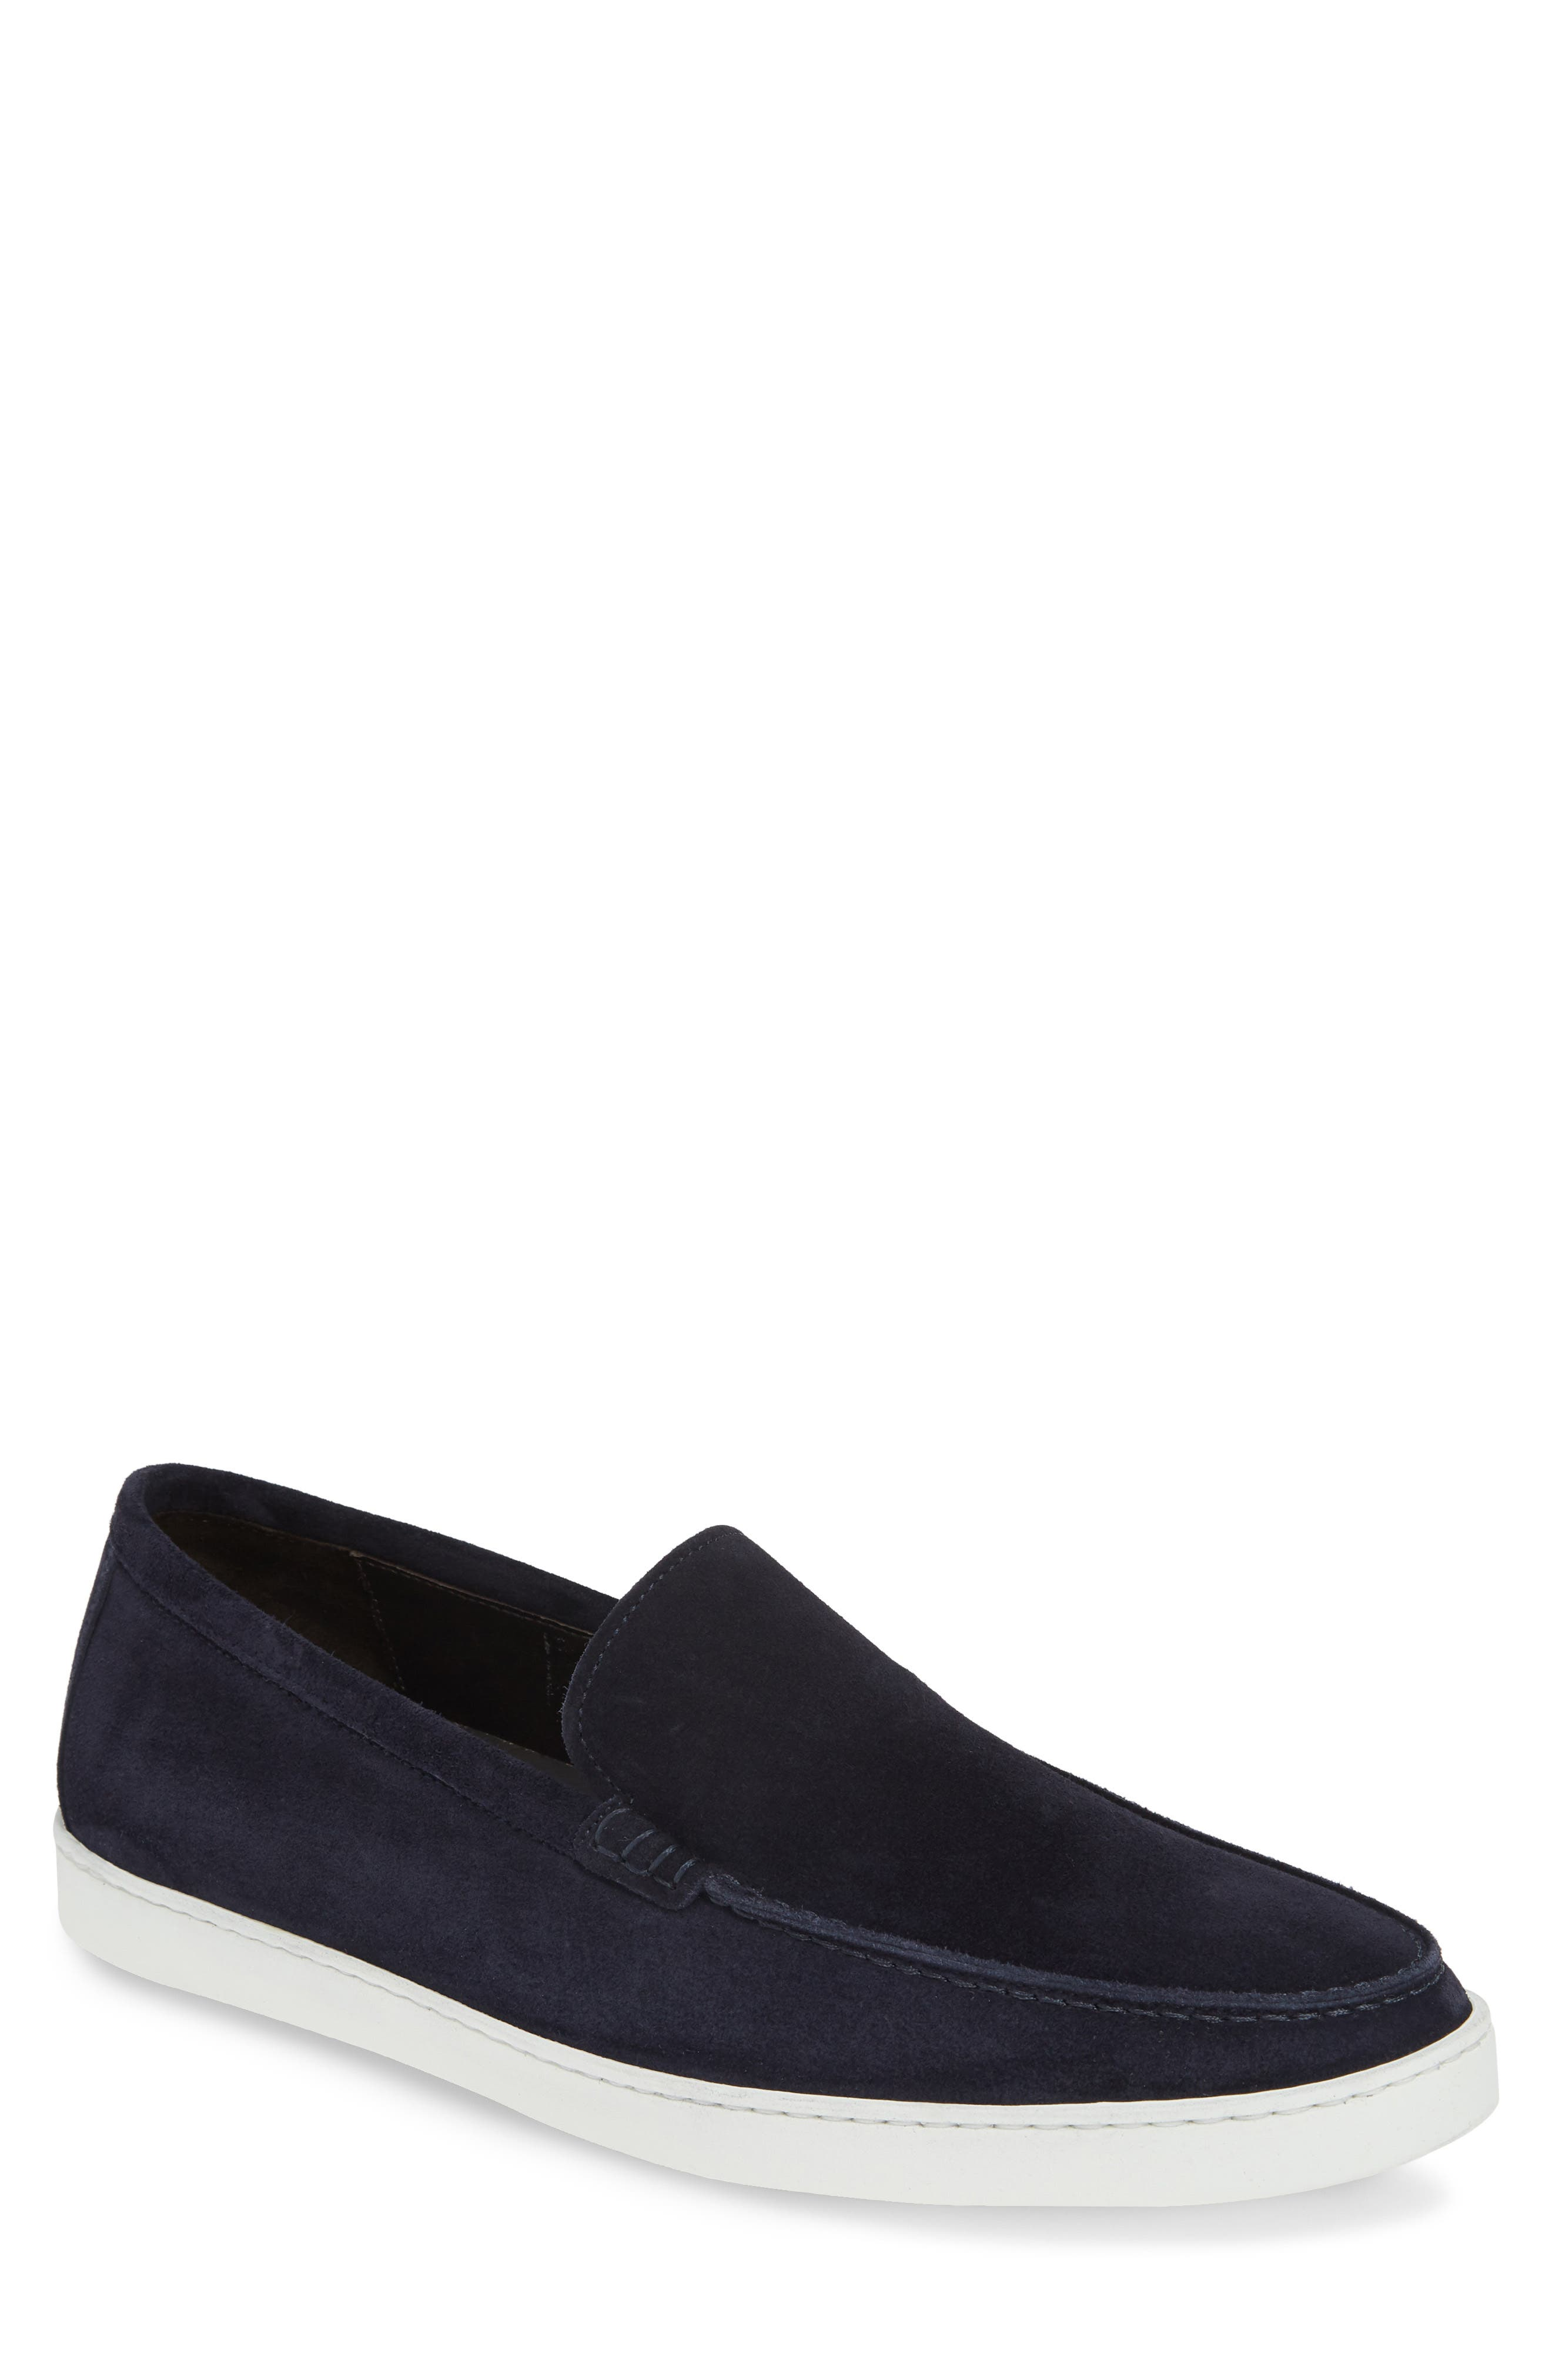 To Boot New York Jet Slip-On, Blue